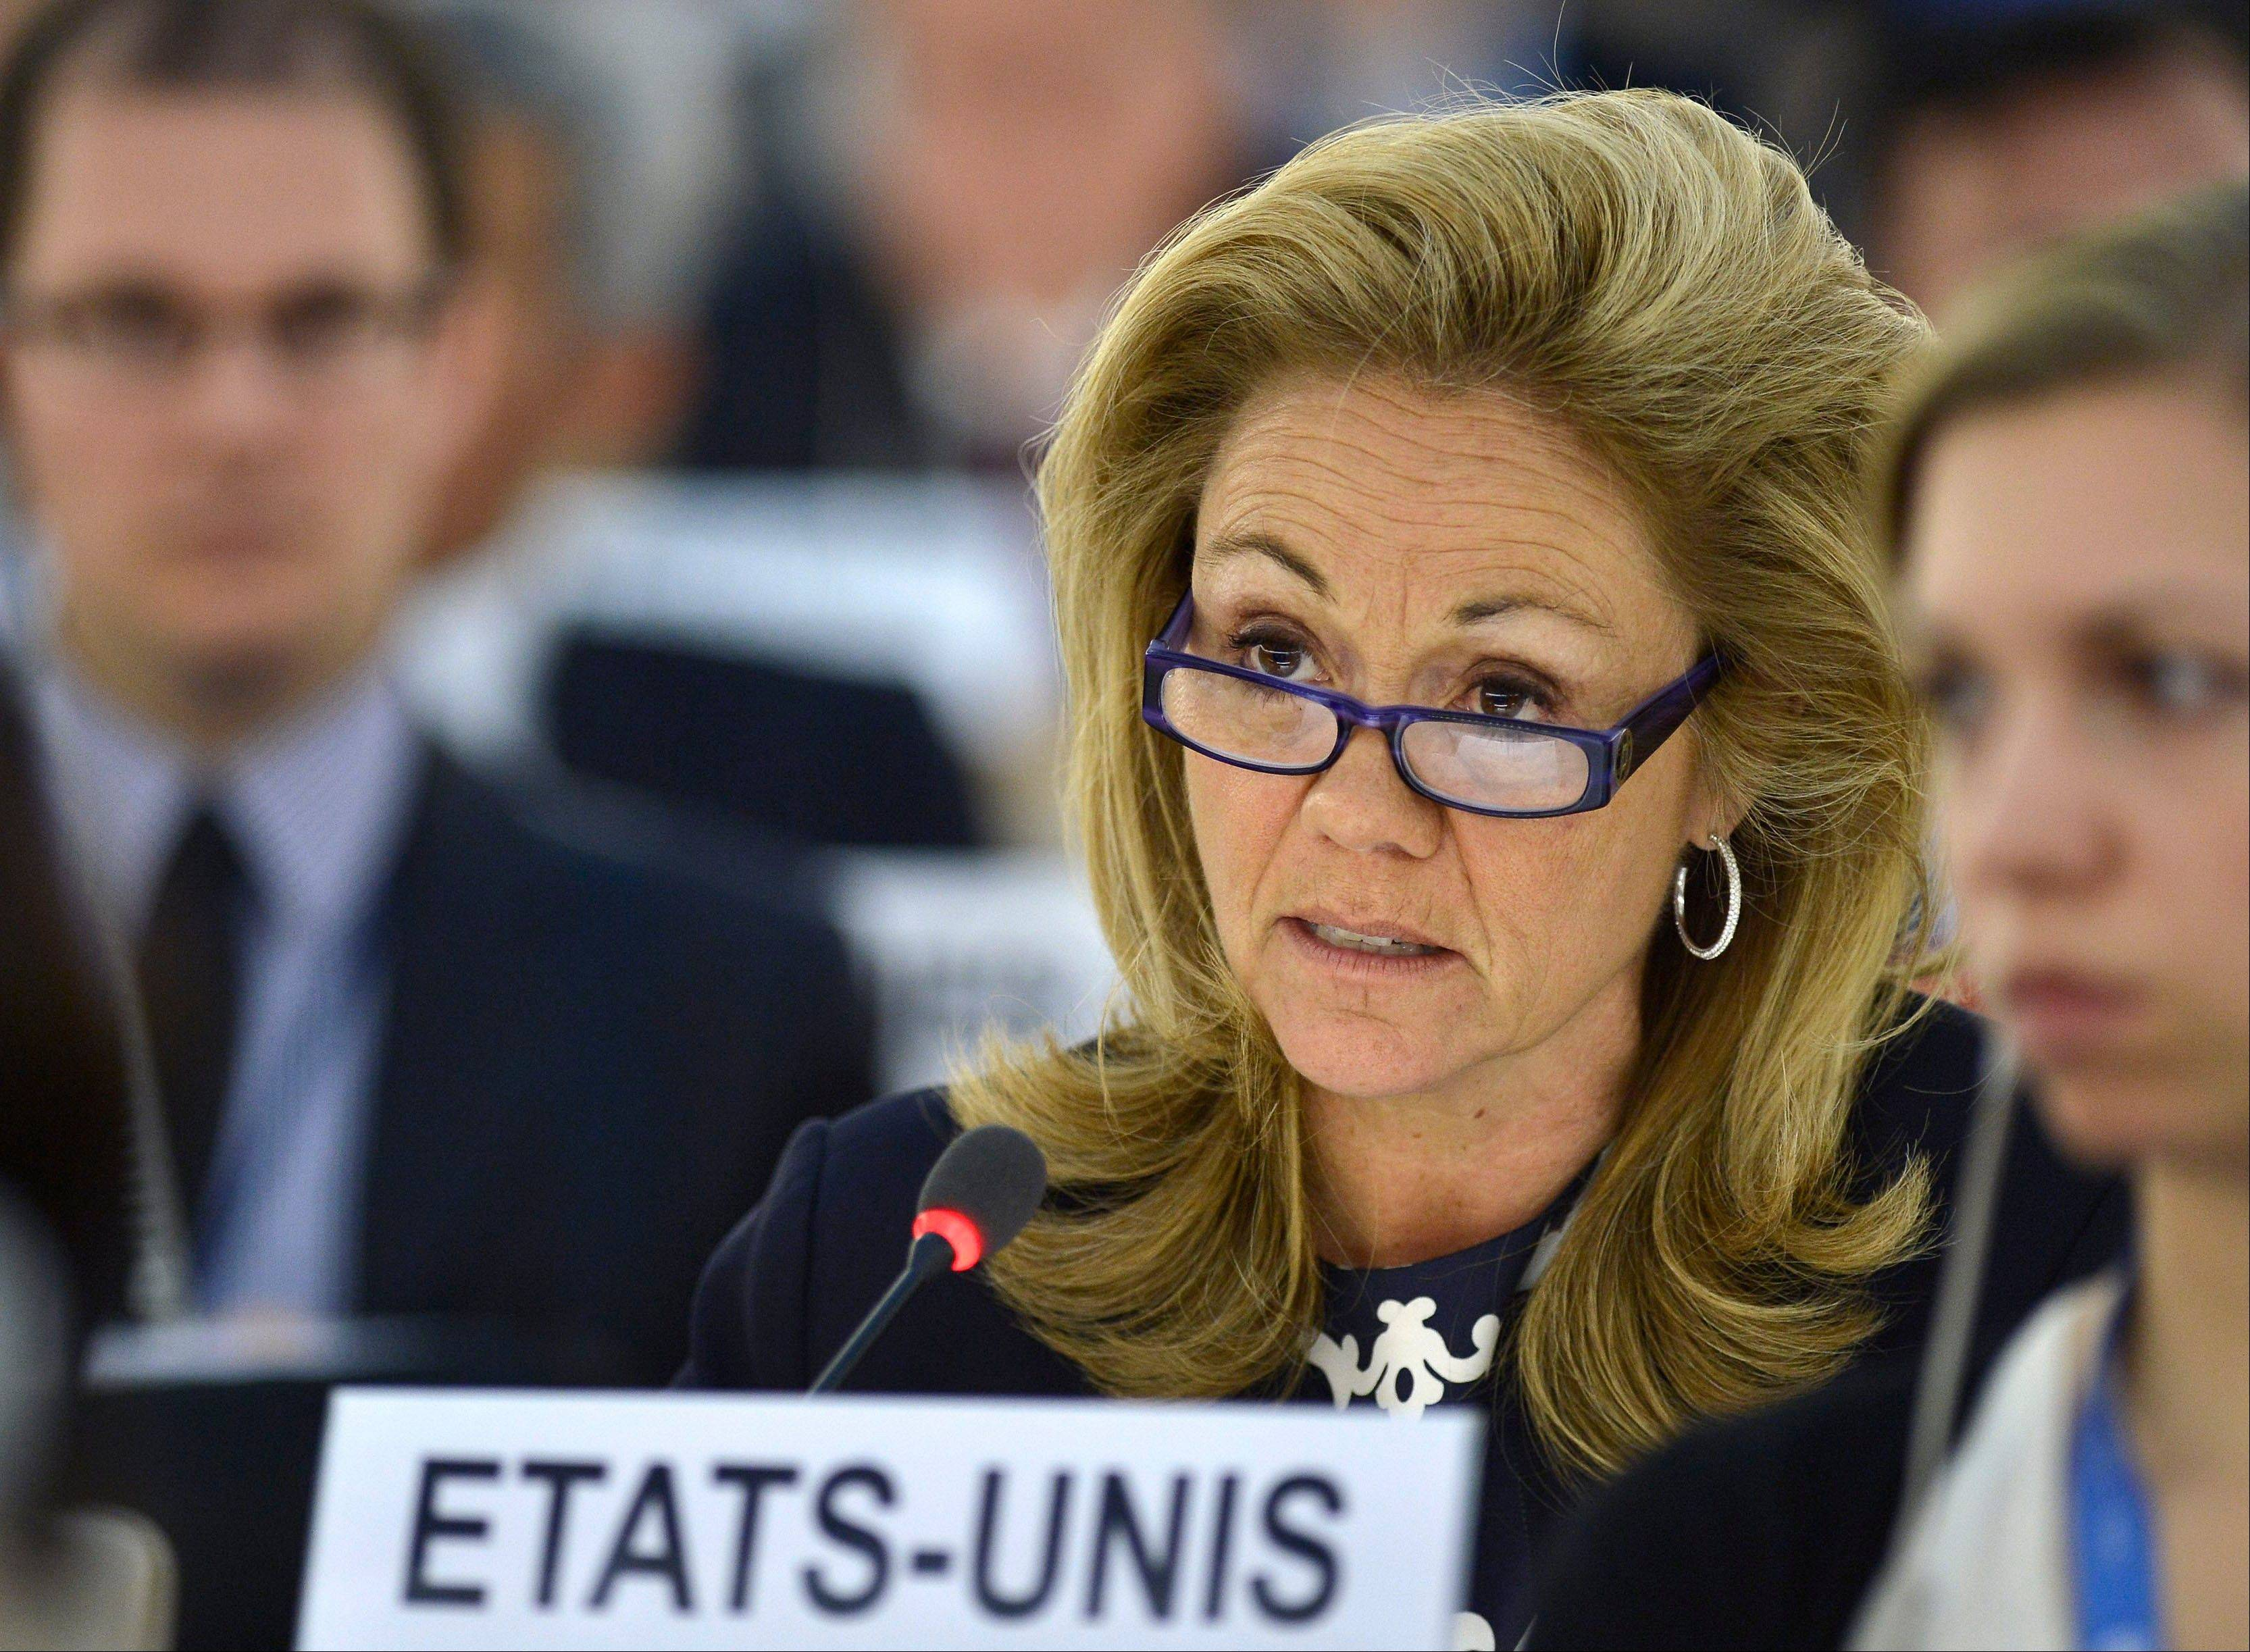 U.S. Ambassador and Representative to the Human Rights Council Eileen Chamberlain Donahoe speaks during the urgent debate on the situation in Syria at the 23rd session of the Human Rights Council at the European headquarters